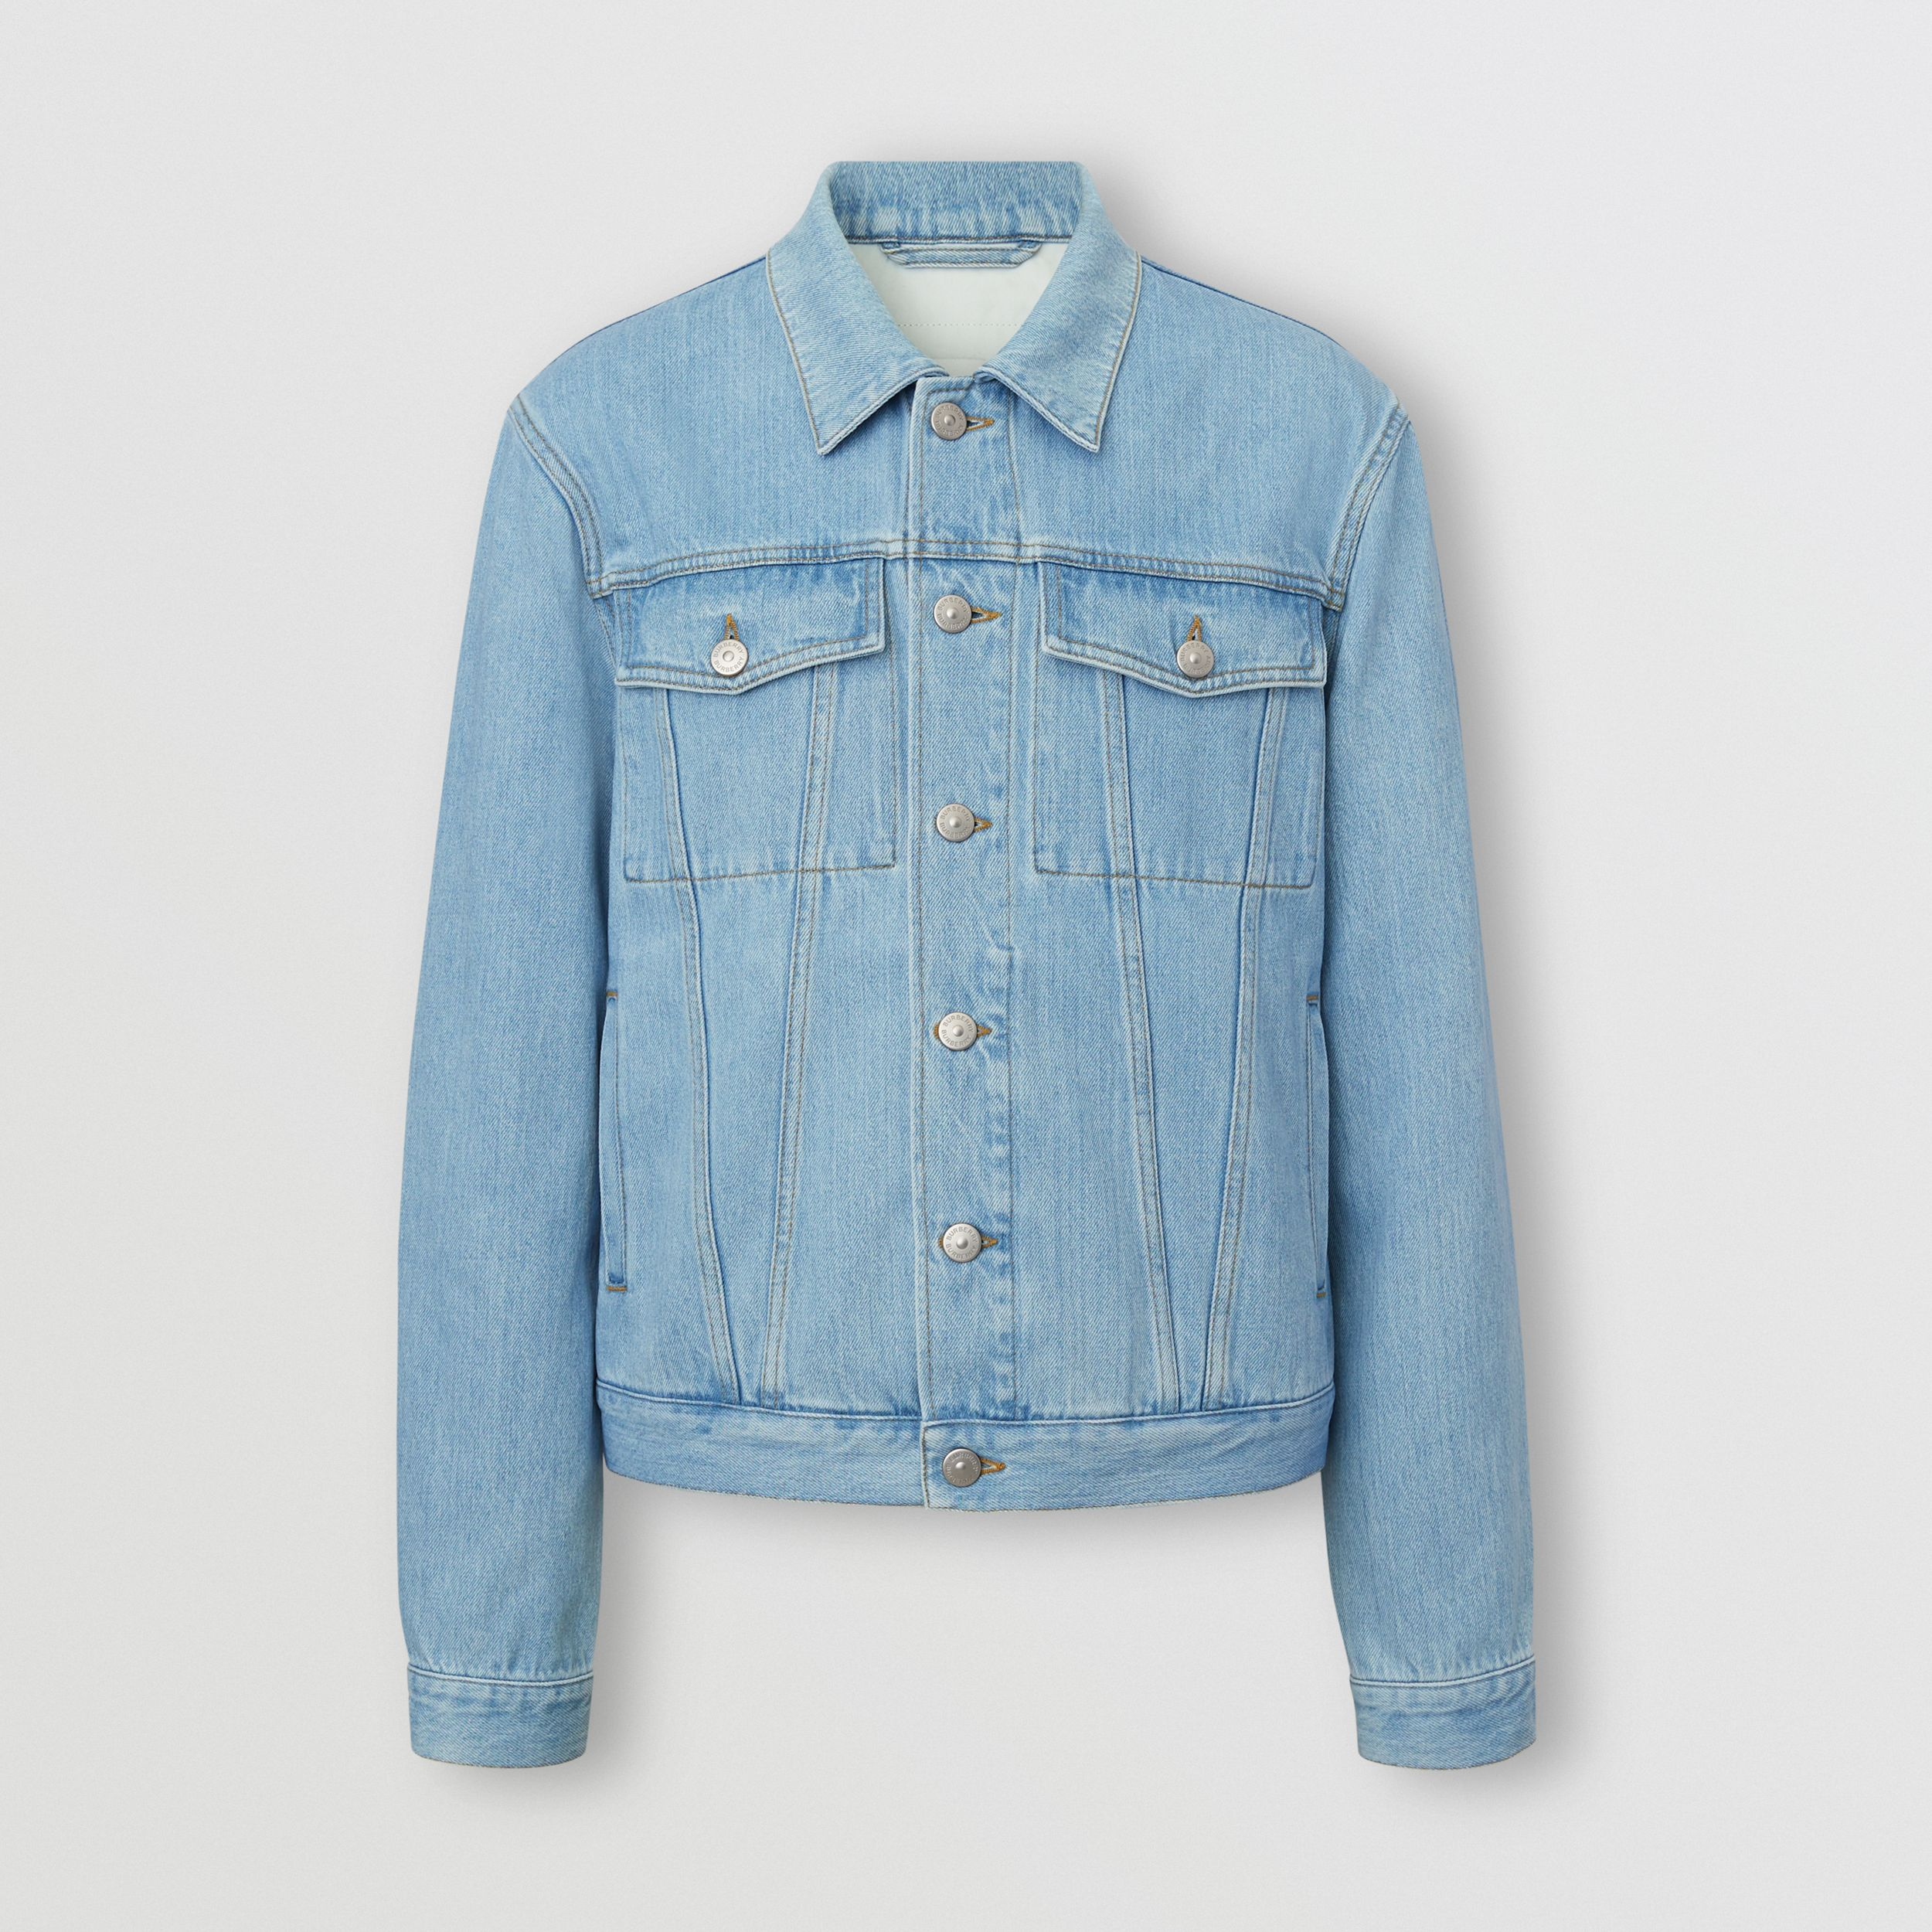 Logo Appliqué Japanese Denim Jacket in Light Indigo Blue - Men | Burberry - 1